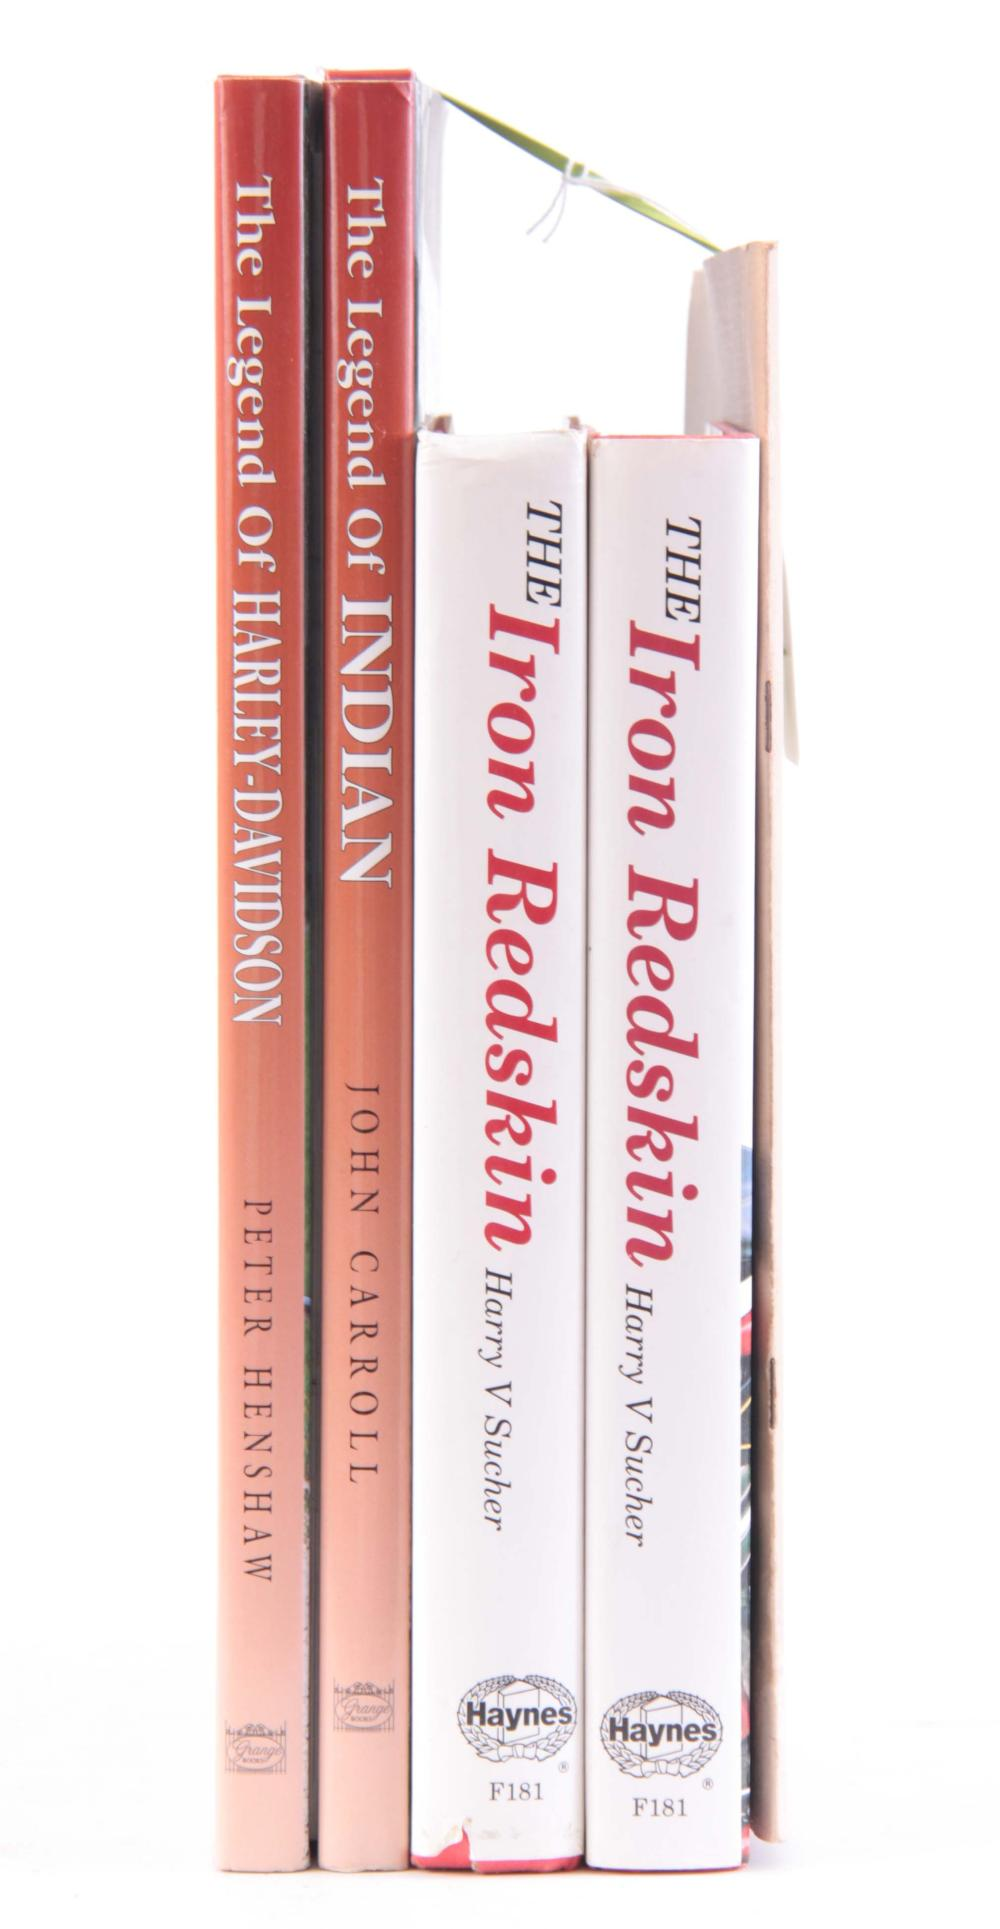 A COLLECTION OF 5 BOOKS including, THE HARLEY DAVI